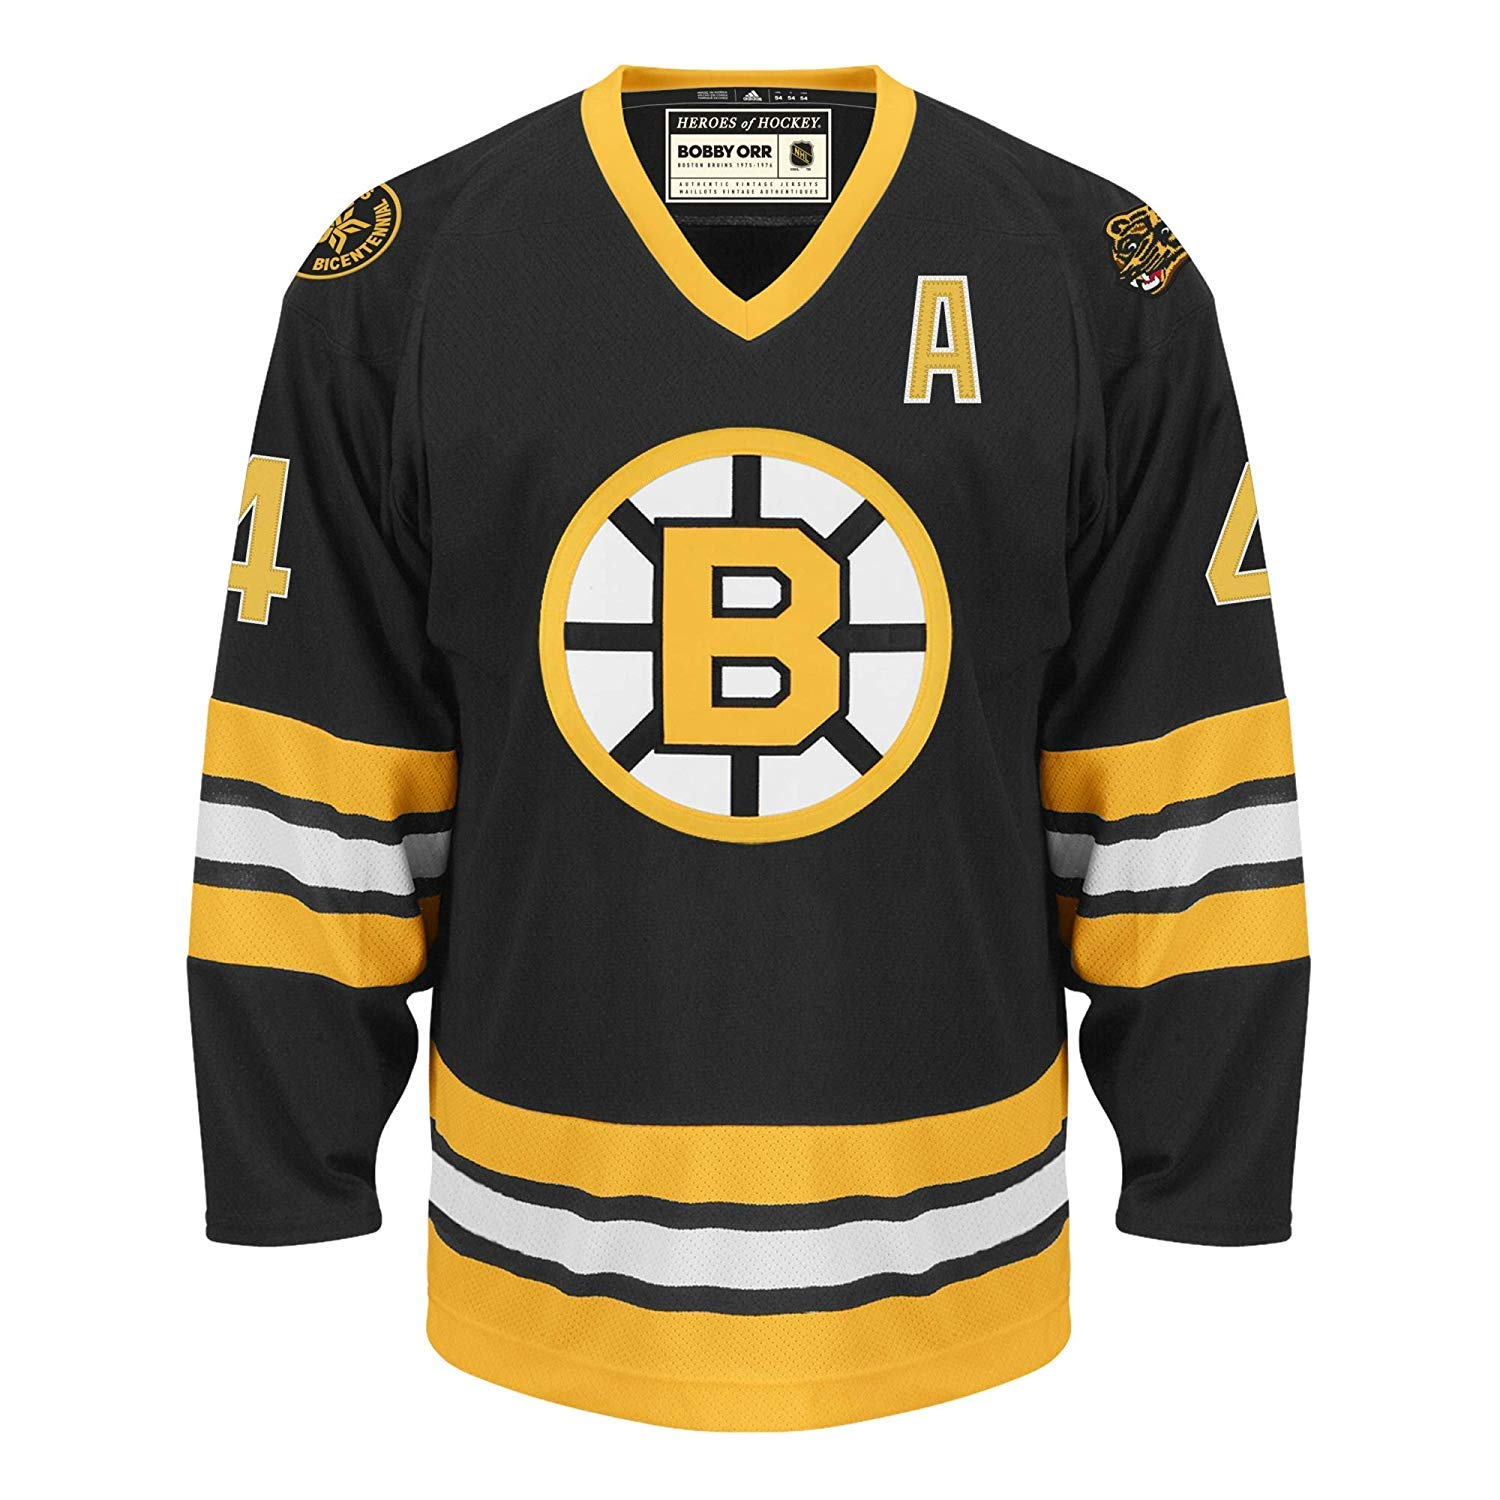 cfea2a3ed Amazon.com : adidas Bobby Orr Boston Bruins Heroes of Hockey Authentic  Vintage Jersey (50/M) : Sports & Outdoors